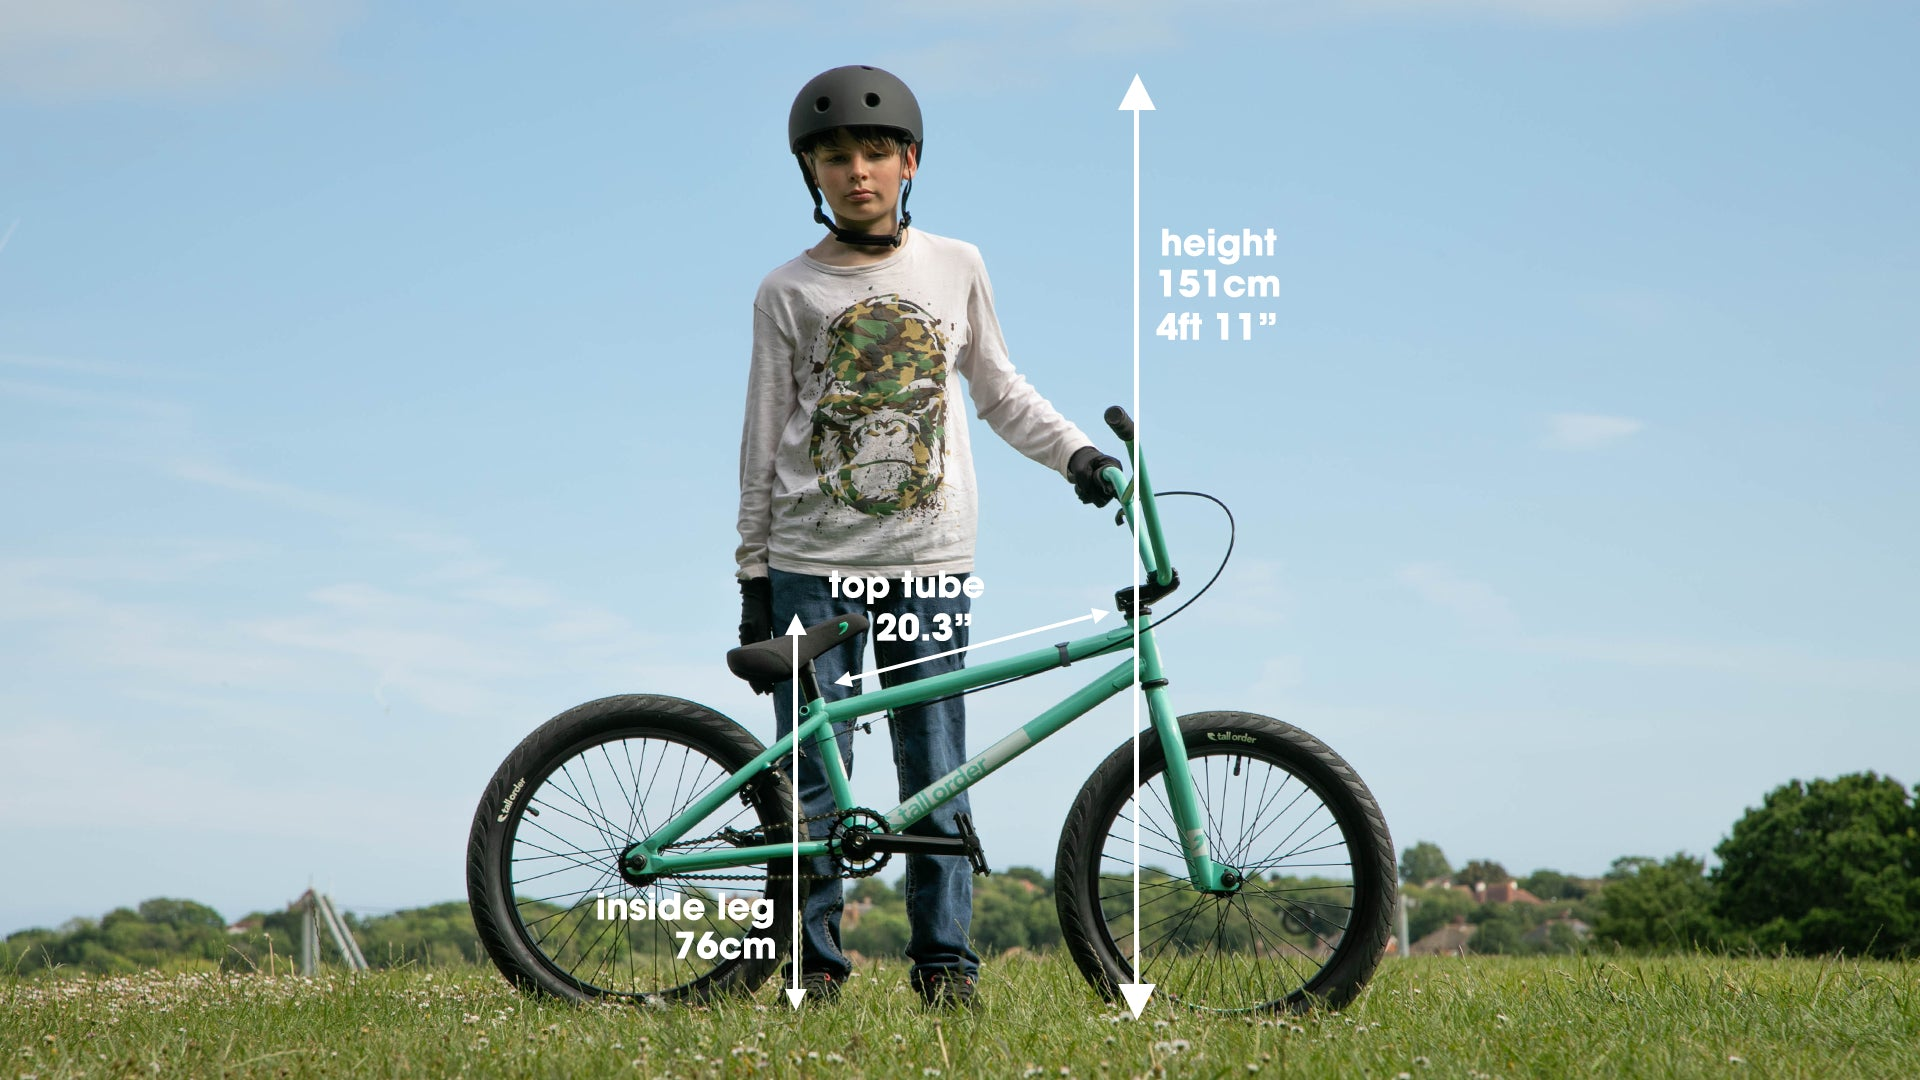 Tall Order Ramp Medium Bike - Gloss Teal 20.3"